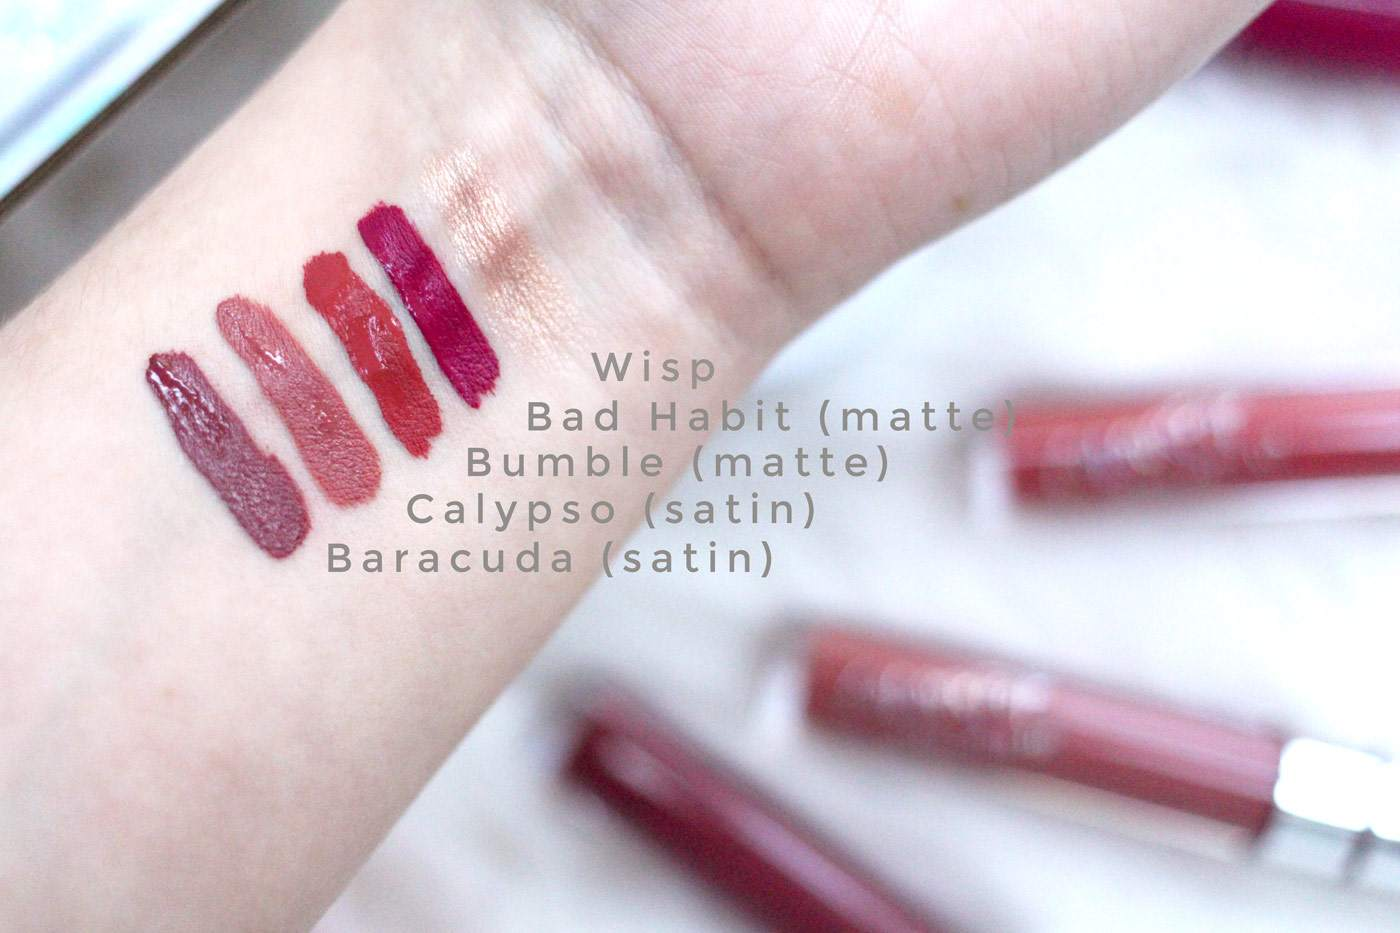 colourpop-satin-matte-liquid-lipsticks-highlighter-review-2